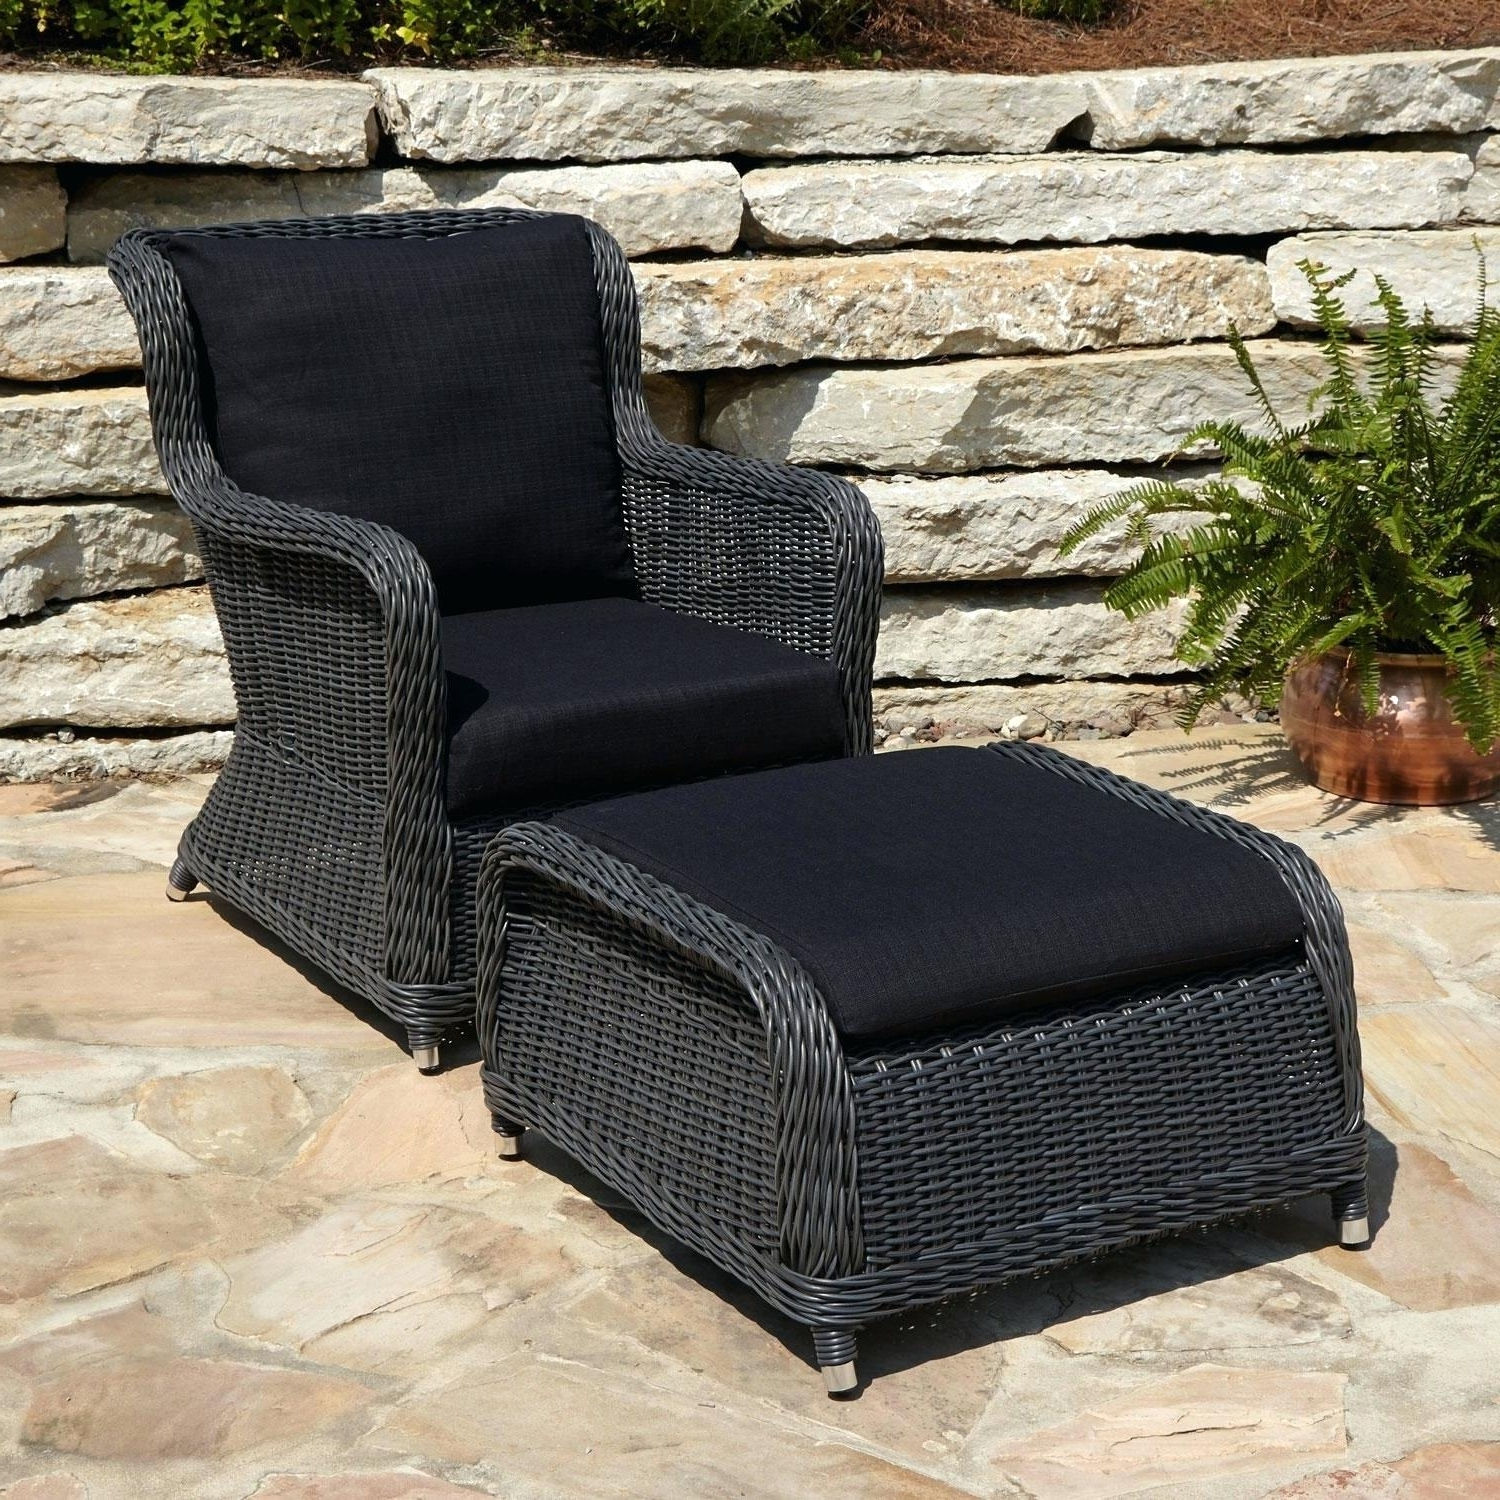 Resin Patio Furniture Sets Chair Pier One Wicker Conversation Blue For Widely Used Pier One Patio Conversation Sets (View 7 of 20)